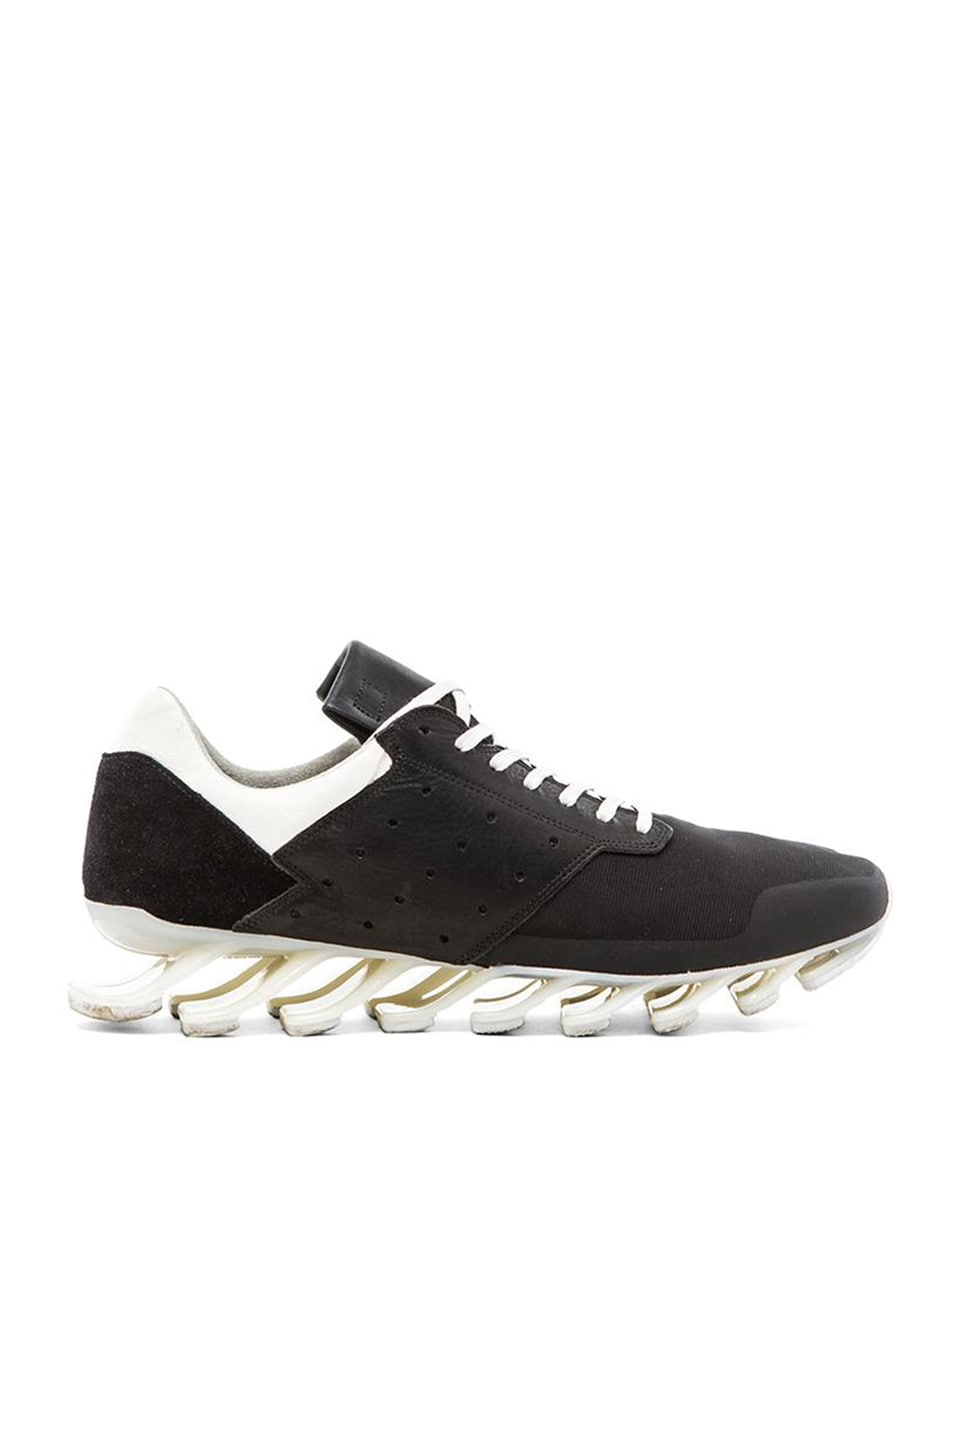 sale retailer e58db f8f63 adidas by Rick Owens Springblade Low in Black Black White ...